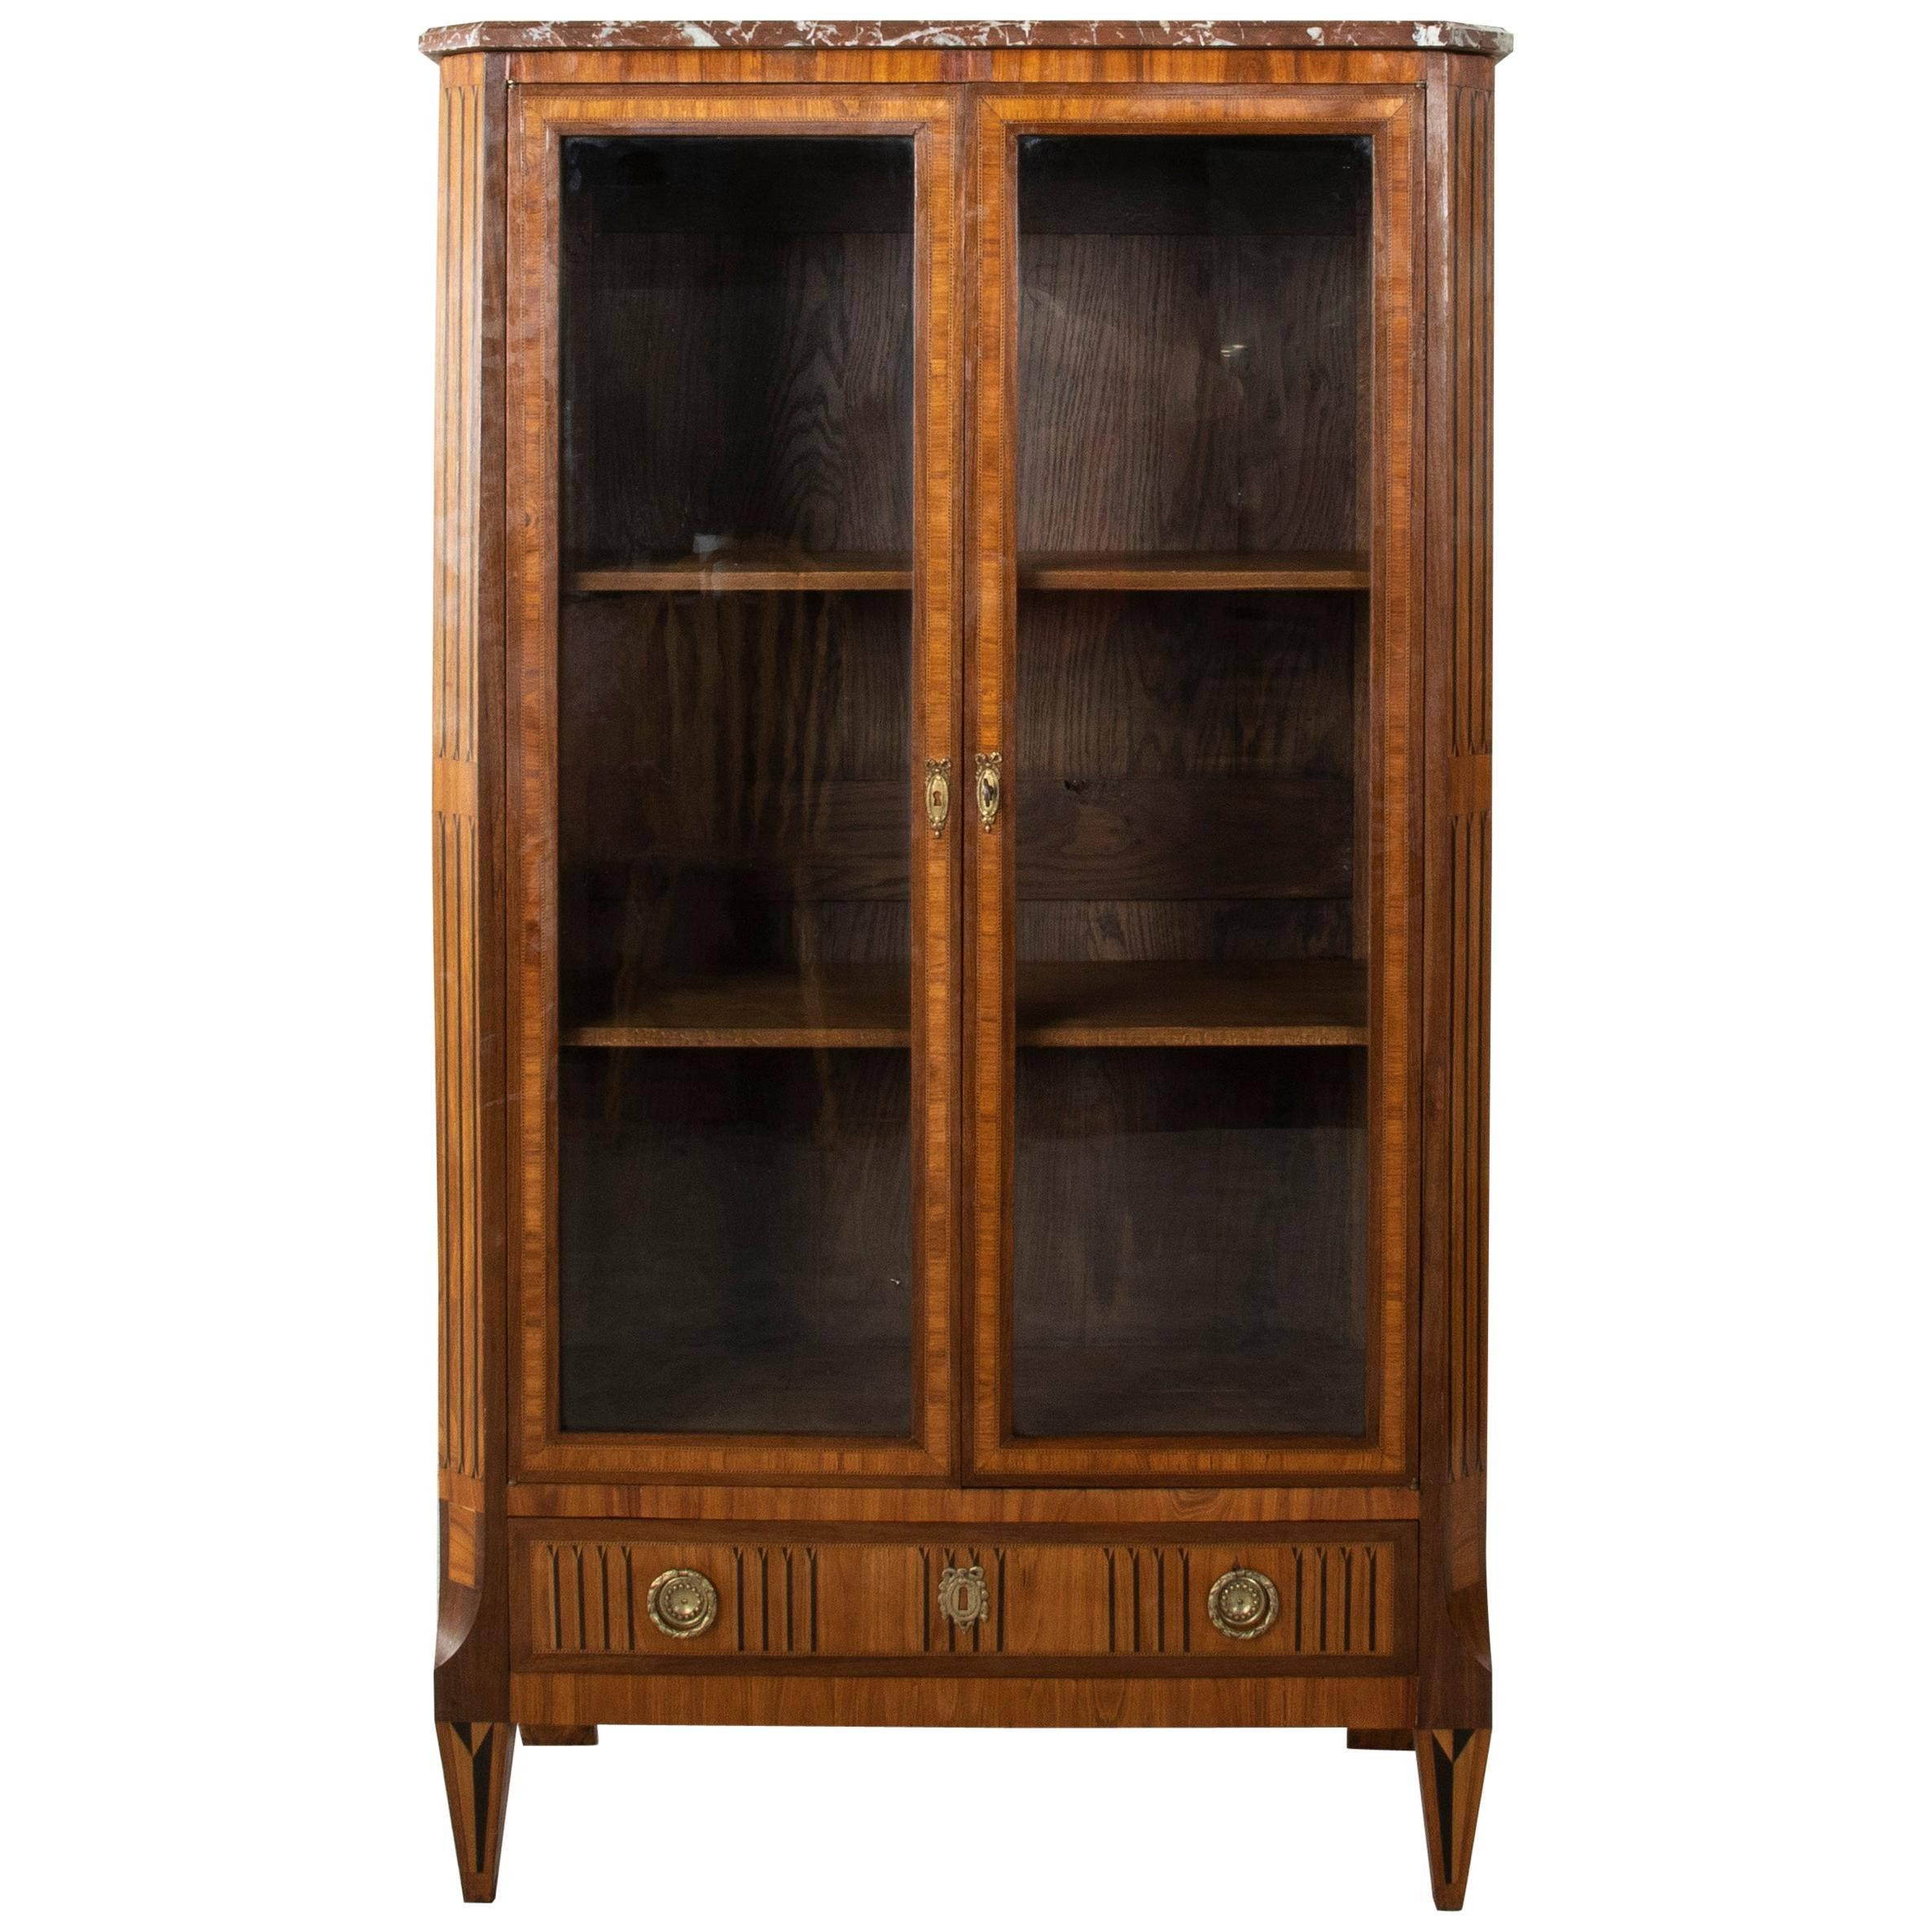 Mid-19th Century French Louis XVI Style Walnut Marquetry Vitrine with Marble Top